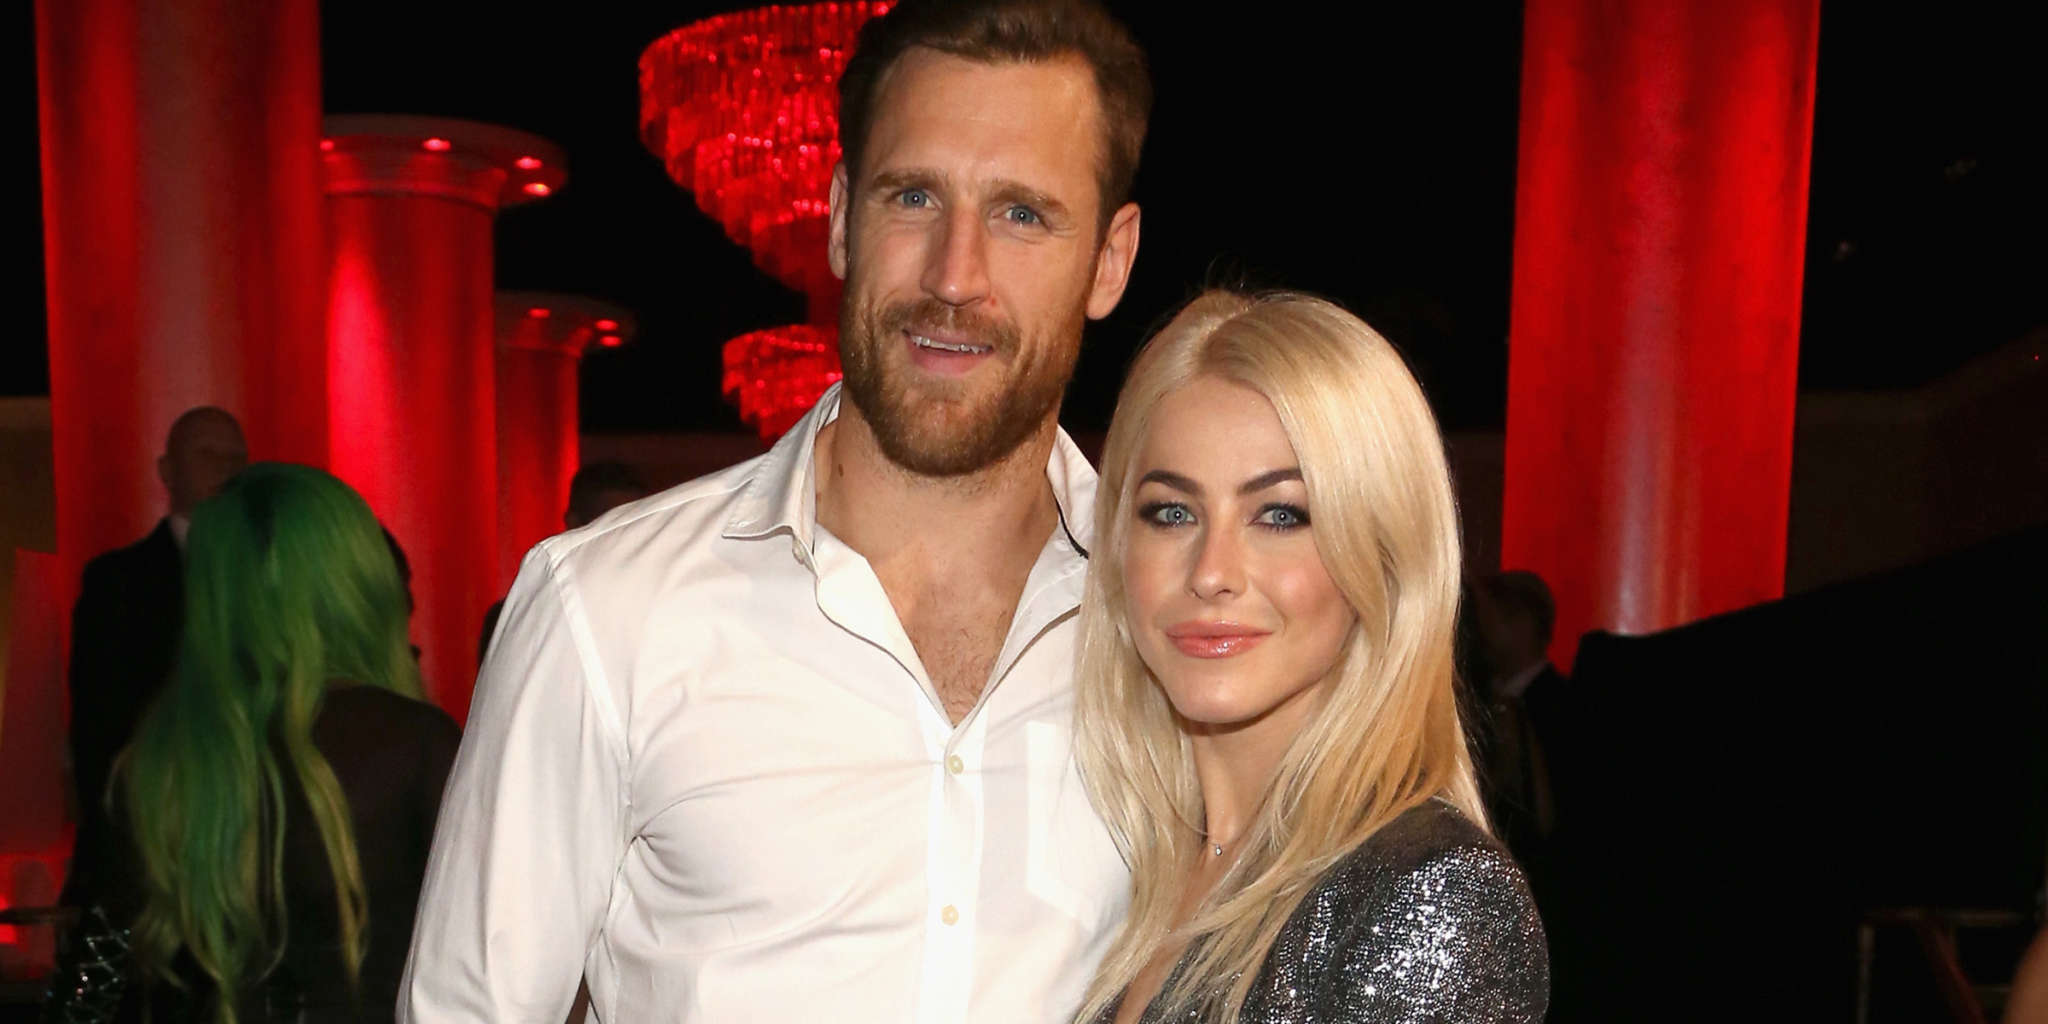 Brooks Laich And Julianne Hough Are Officially Over After She Files For Divorce – Here's How He Feels About It!